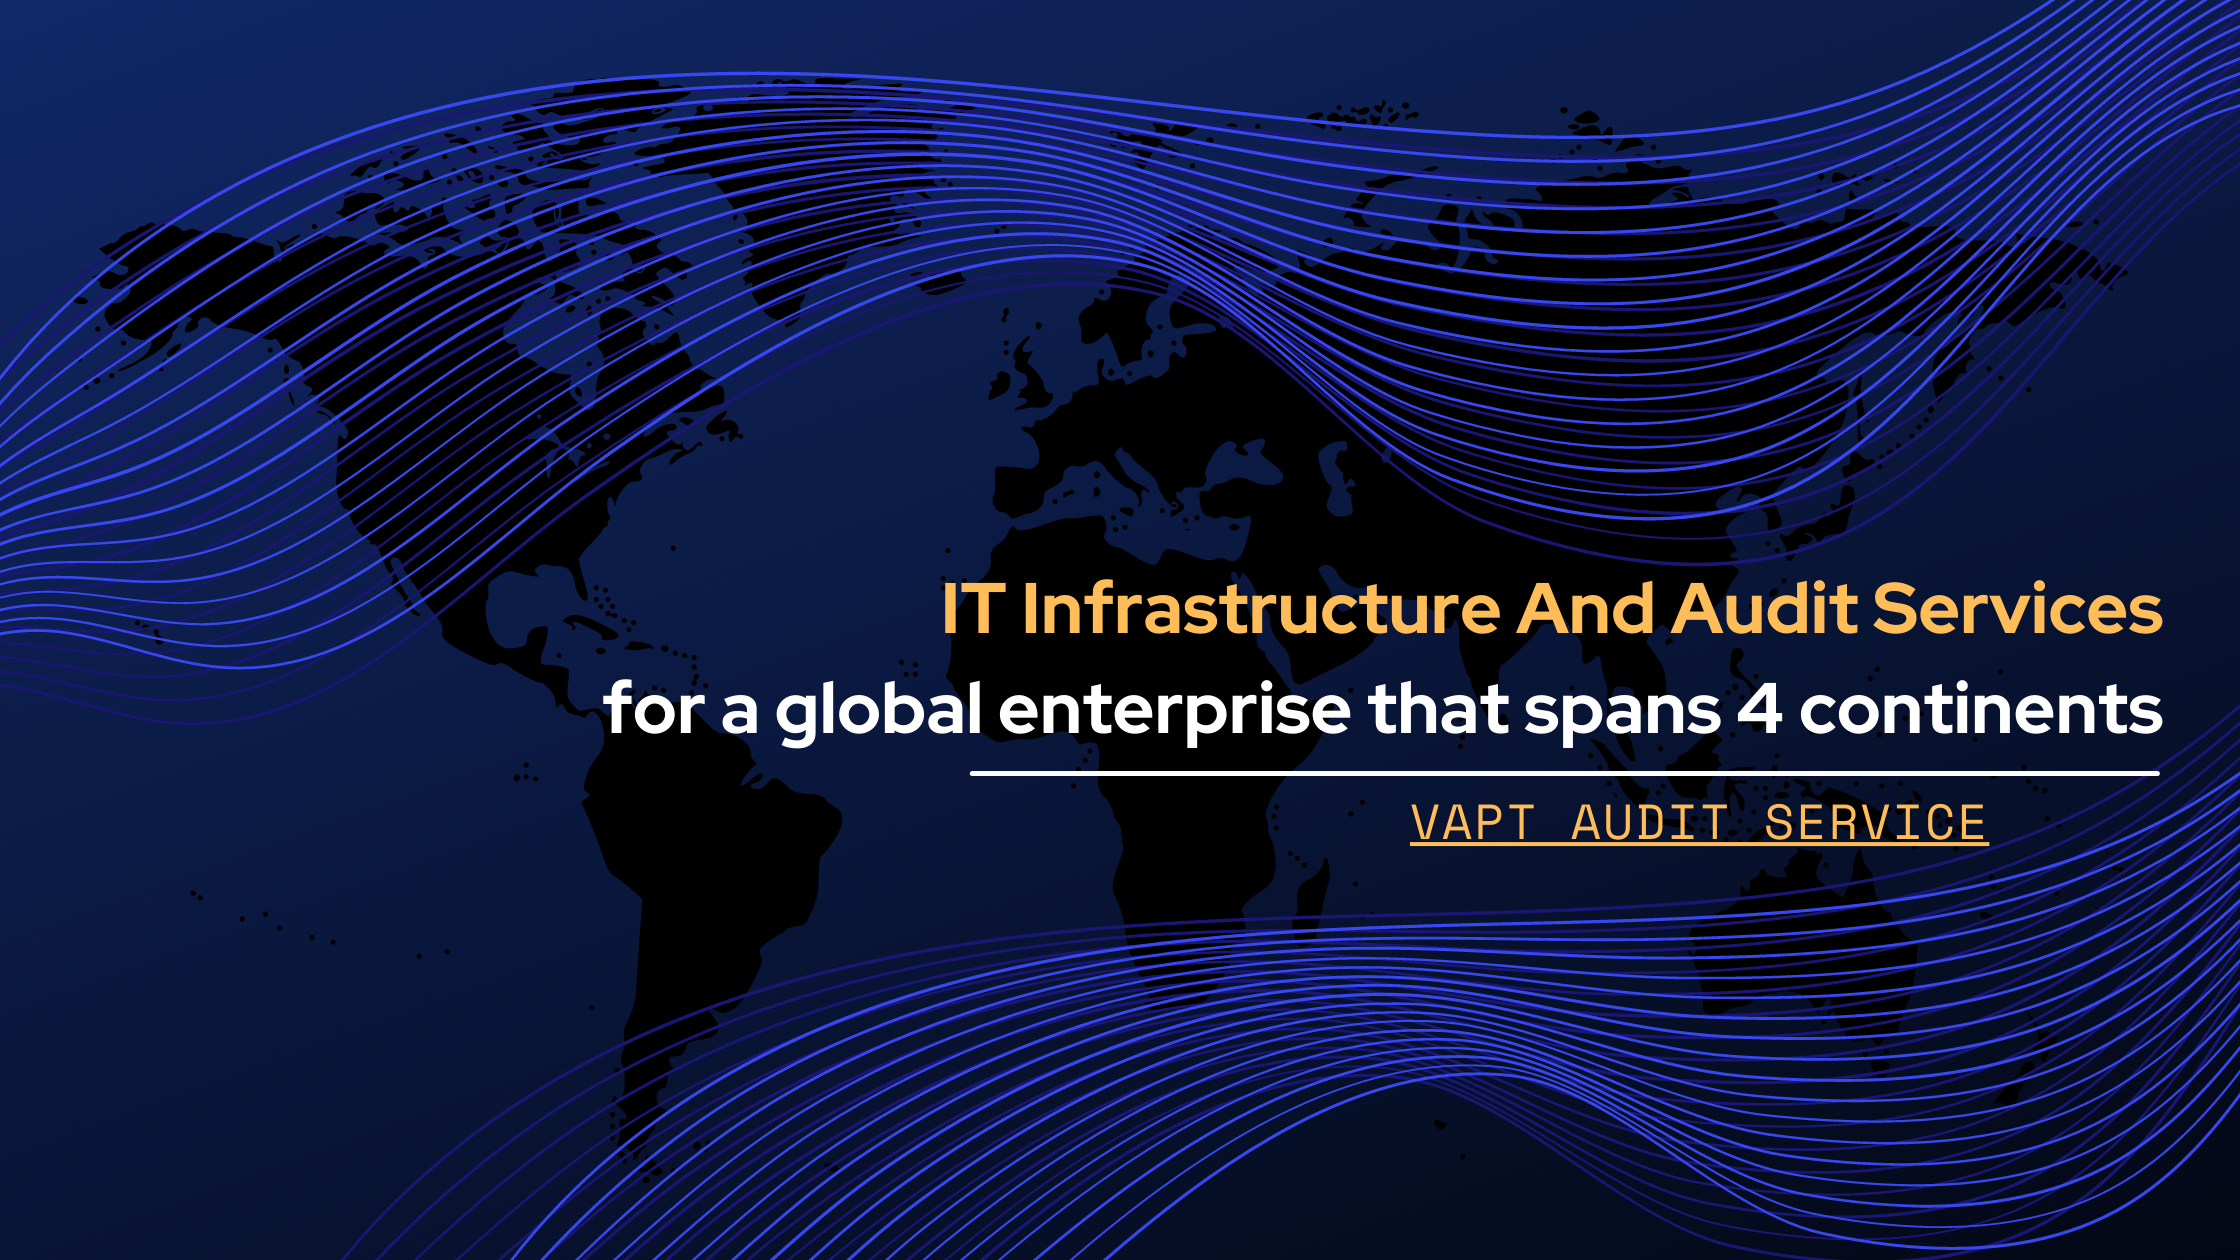 IT infrastructure and audit services for a global enterprise that spans 4 continents